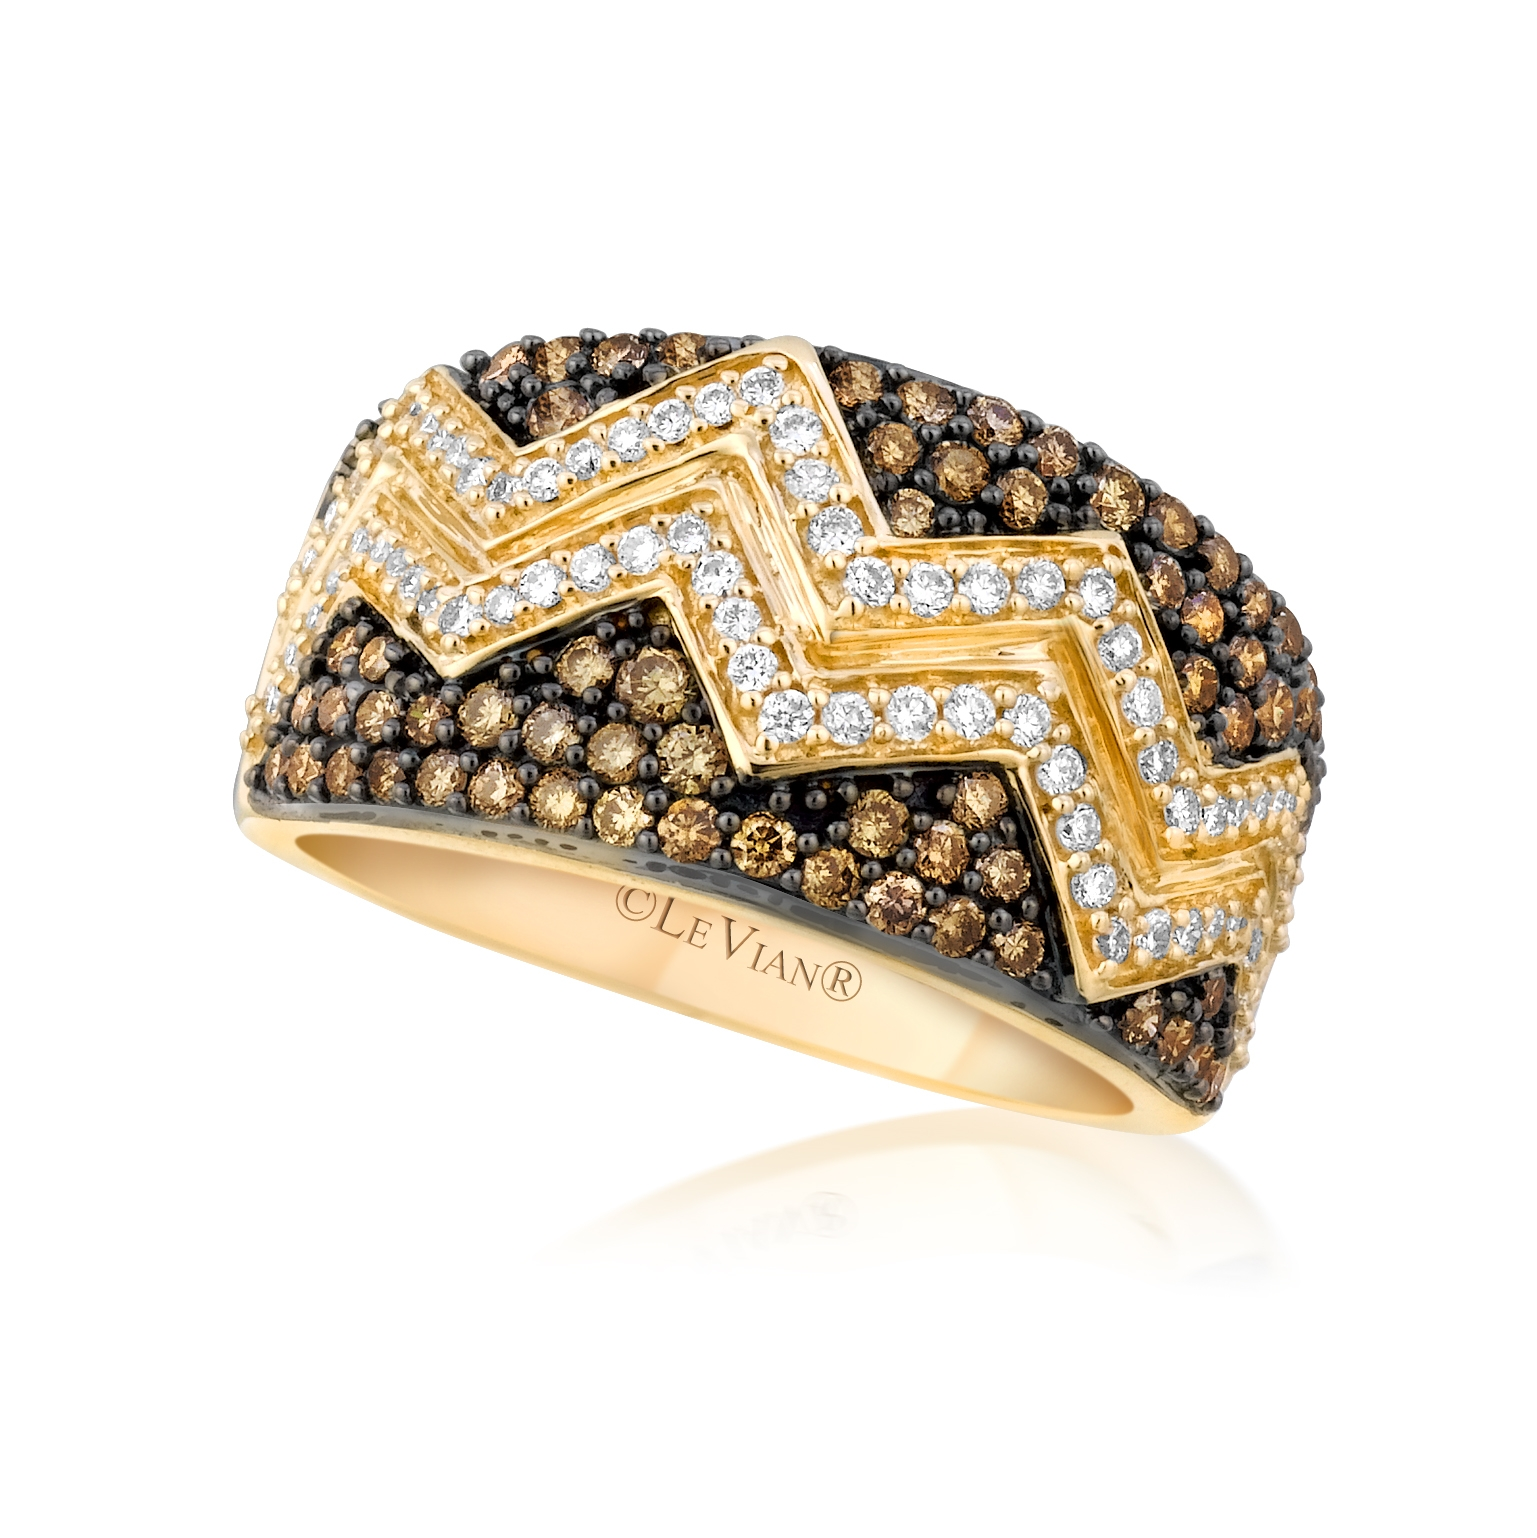 Le Vian Jewelry Trunk Show: An Exclusive Collection of Chocolate ...